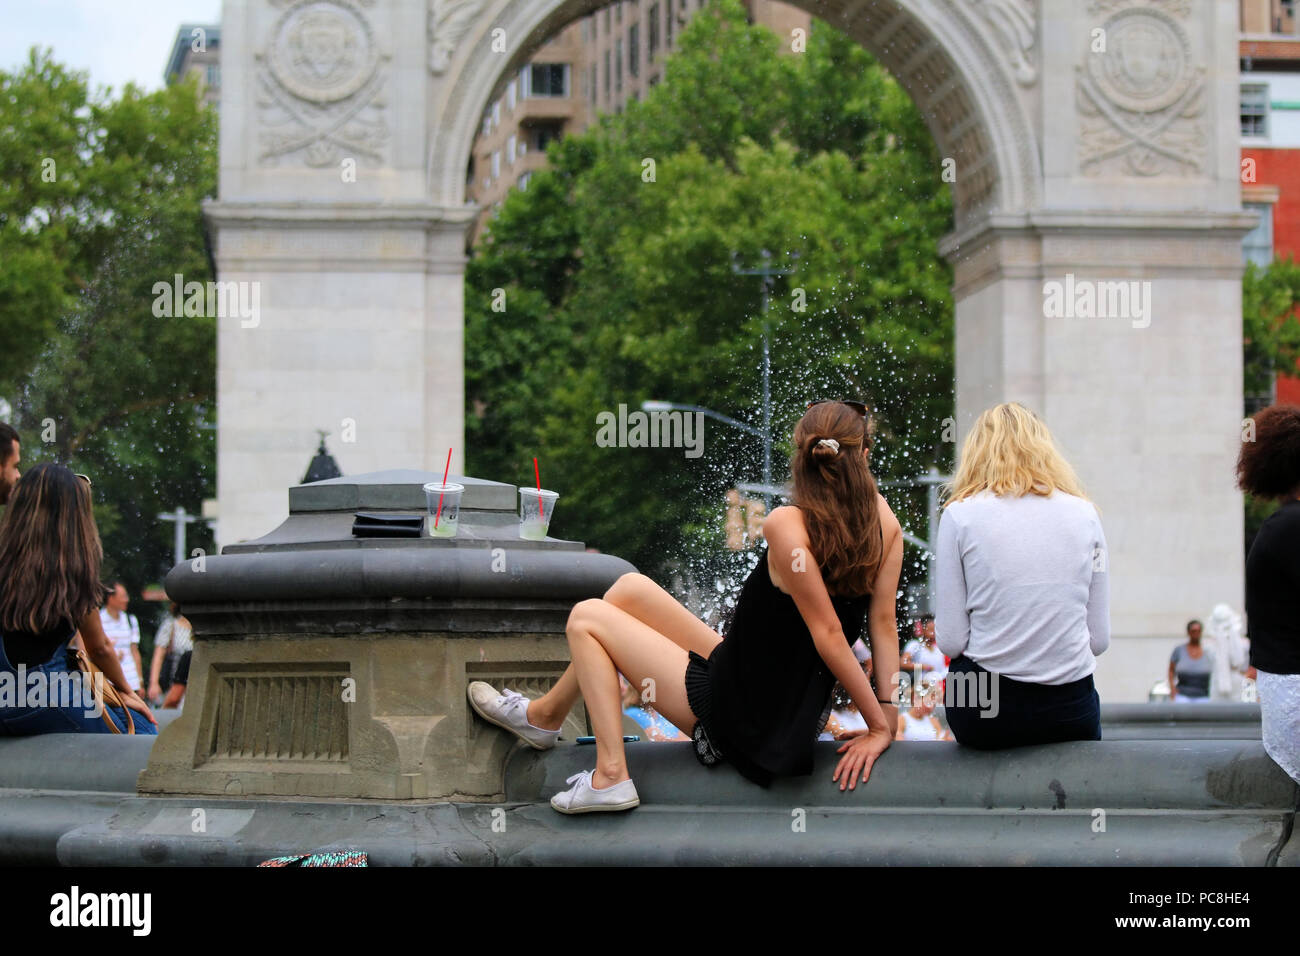 NEW YORK, NY - JULY 10: Young women sit on a rim of a Washington Square Park fountain in Manhattan on JULY 10th, 2017 in New York, USA. - Stock Image